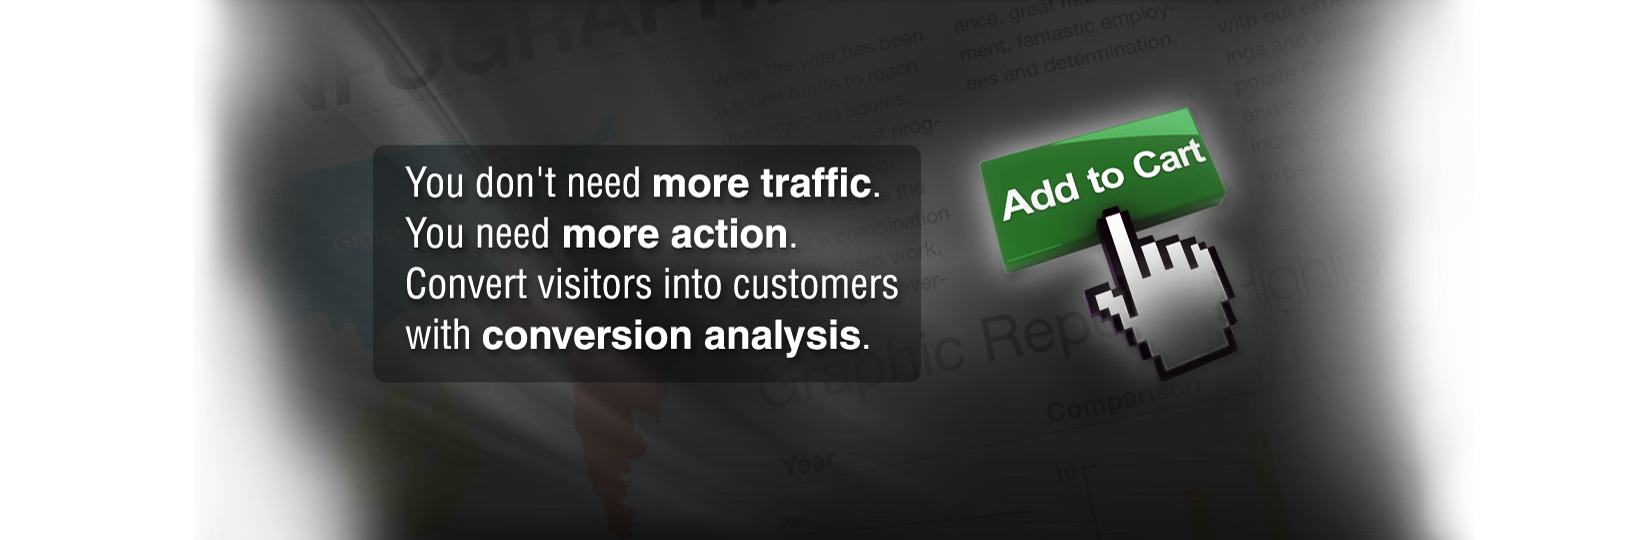 Convert Visitors into Customers with Conversion Analysis